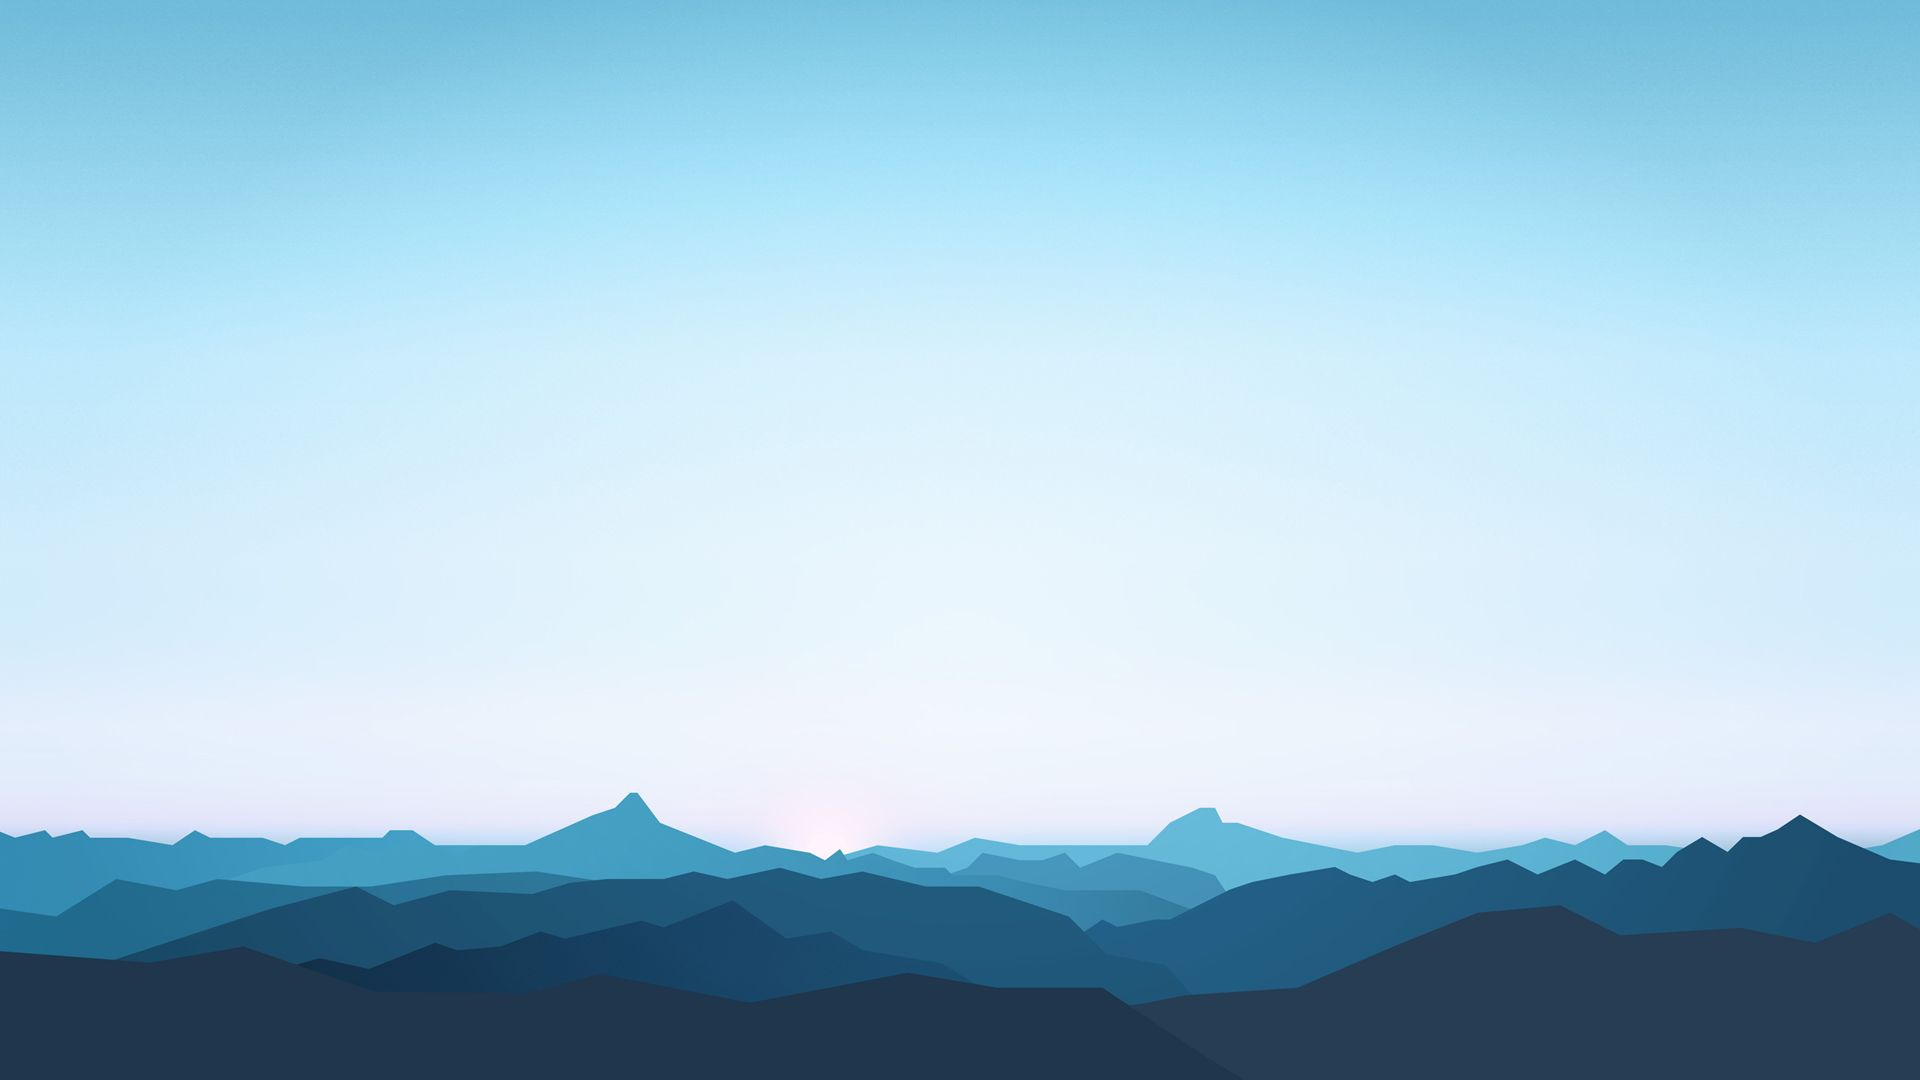 Free Mountain Vector desktop wallpaper